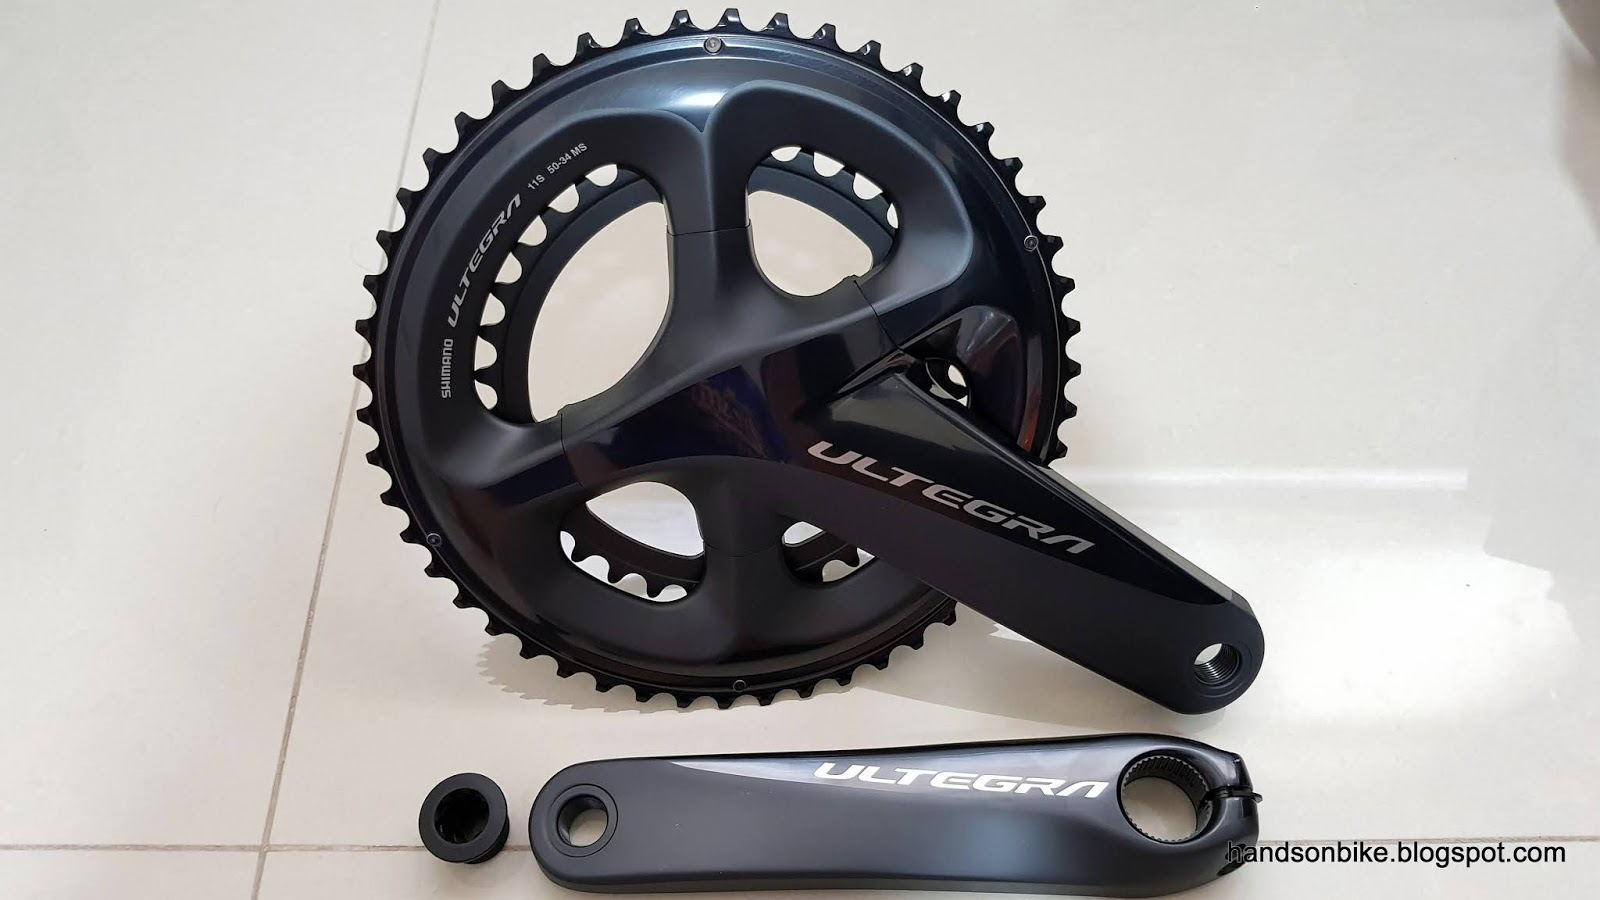 Hands On Bike Dahon Musp Crankset And Cassette Mini Group Set 11speed Slx Sprocket 46t However I Want To Install A Full Ultegra Groupset Not Mix The Components Therefore Still Decided Use New R8000 For This